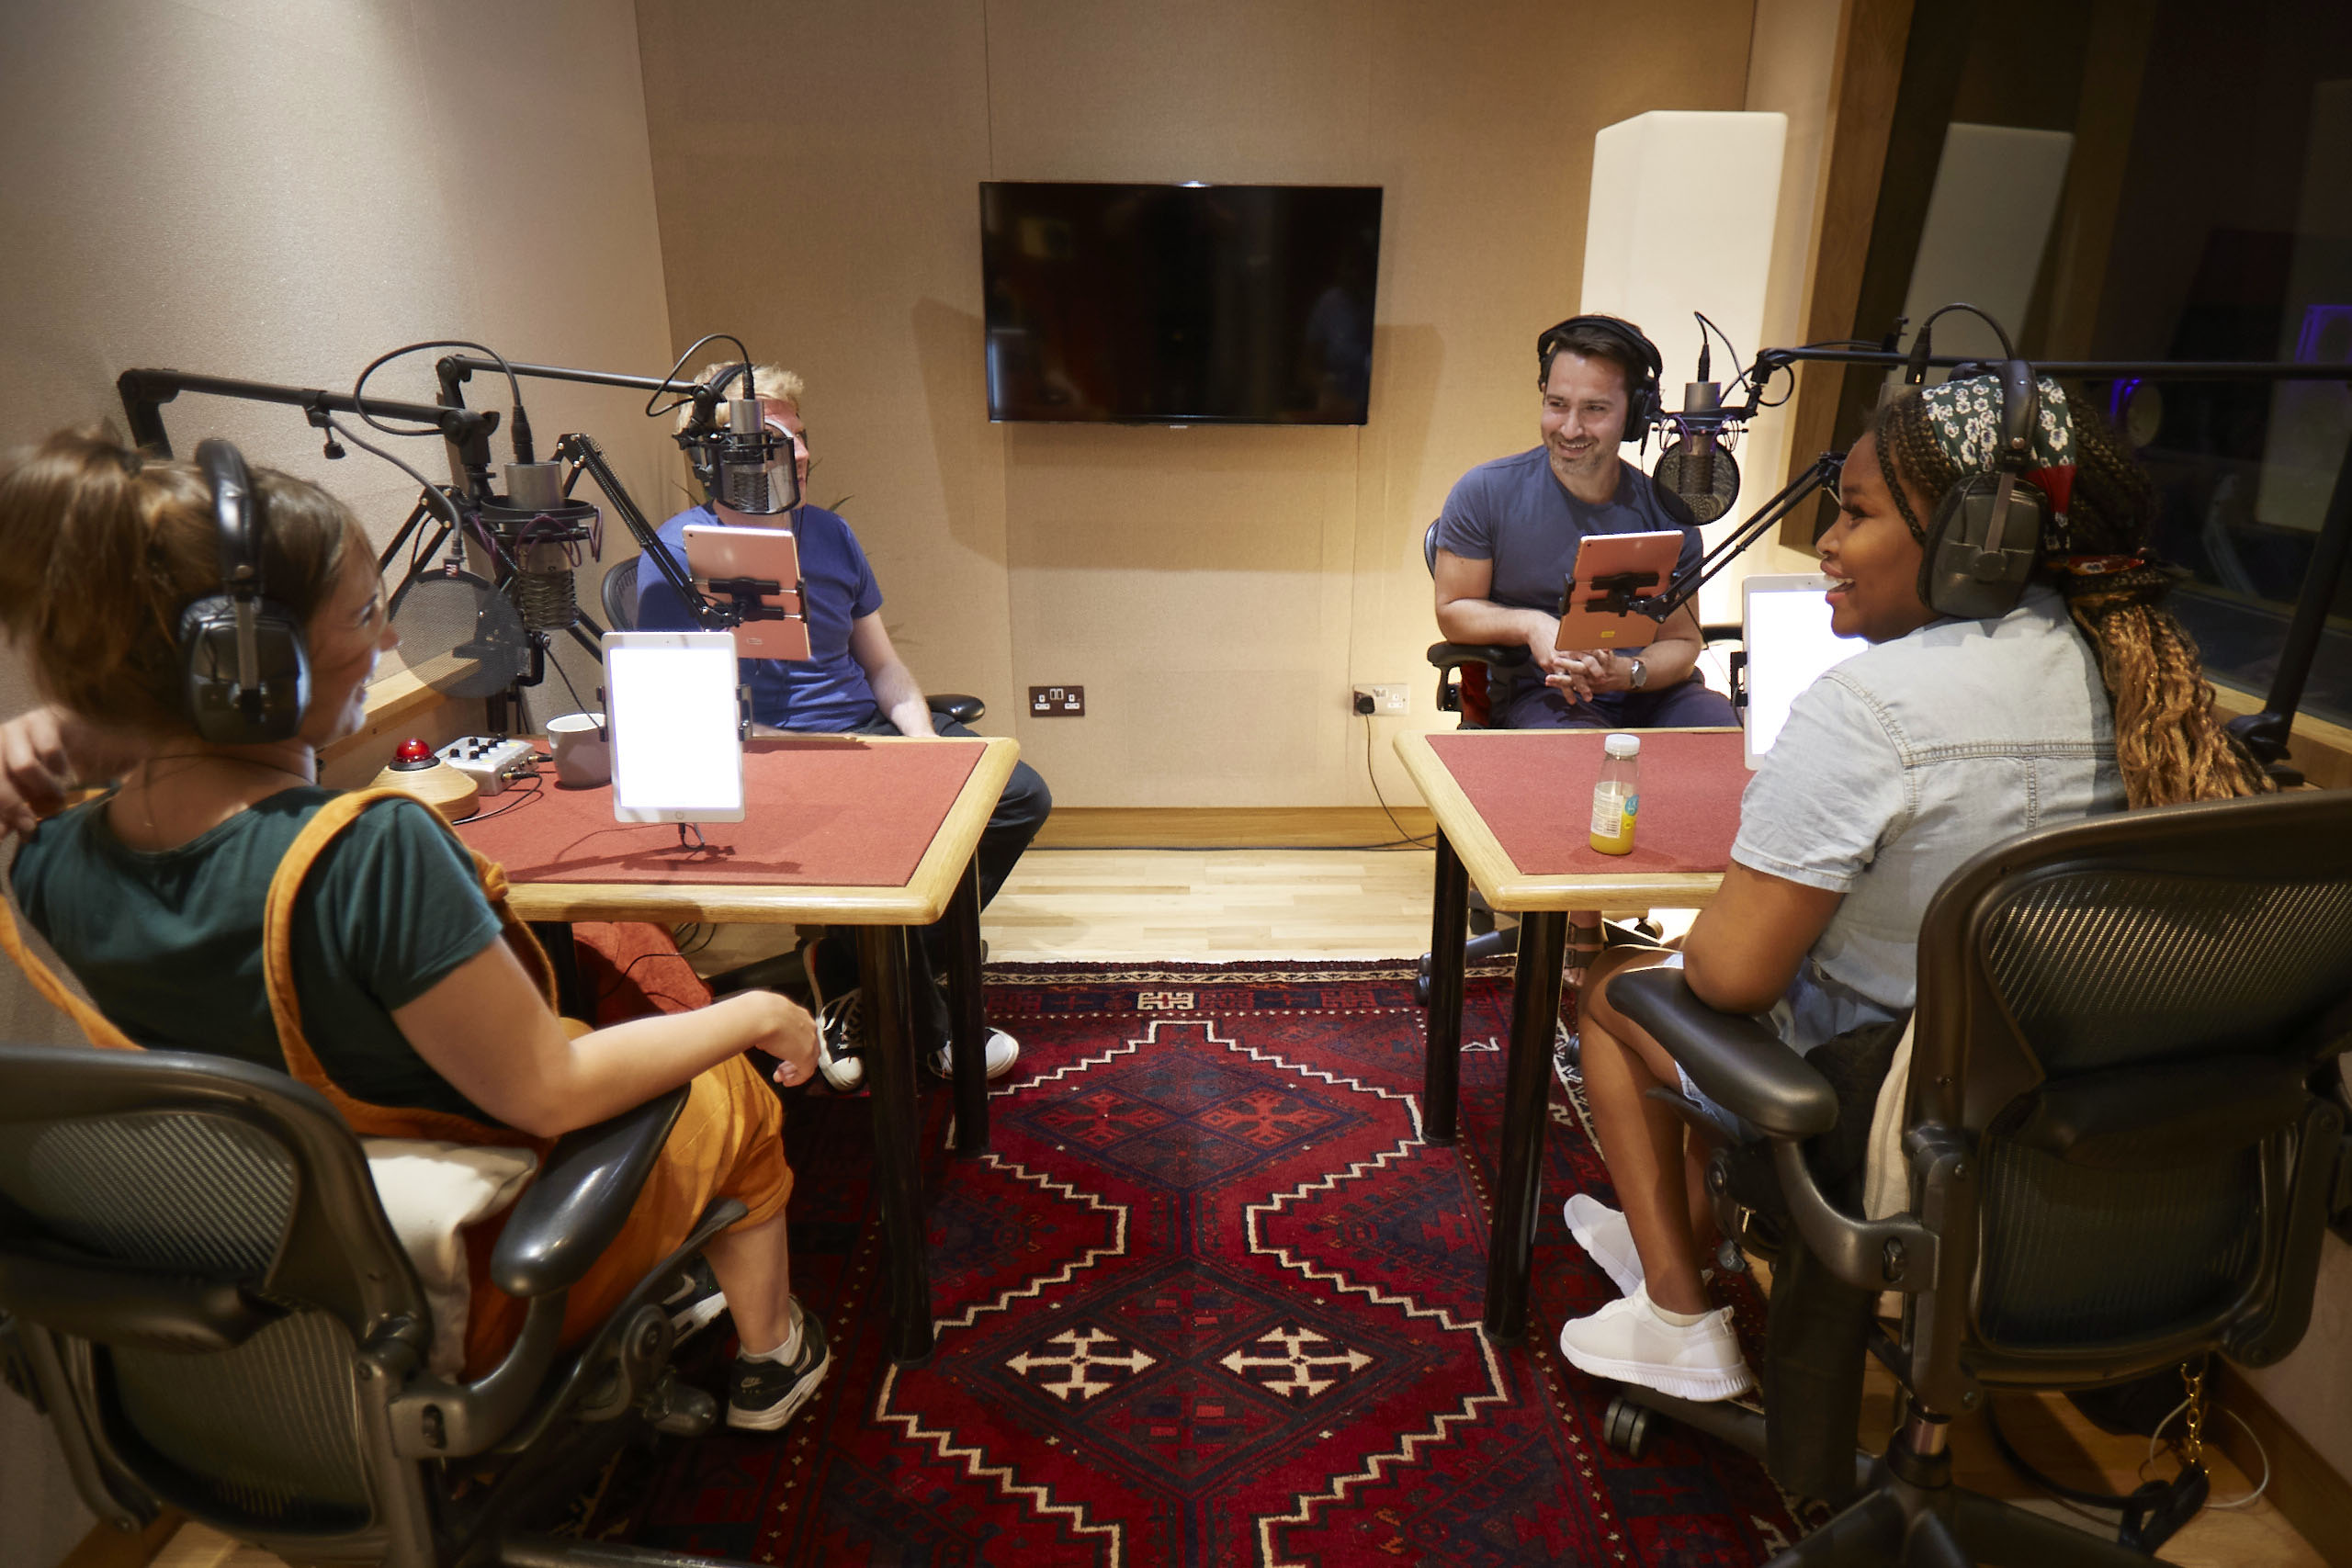 Four people recoding audio in a studio